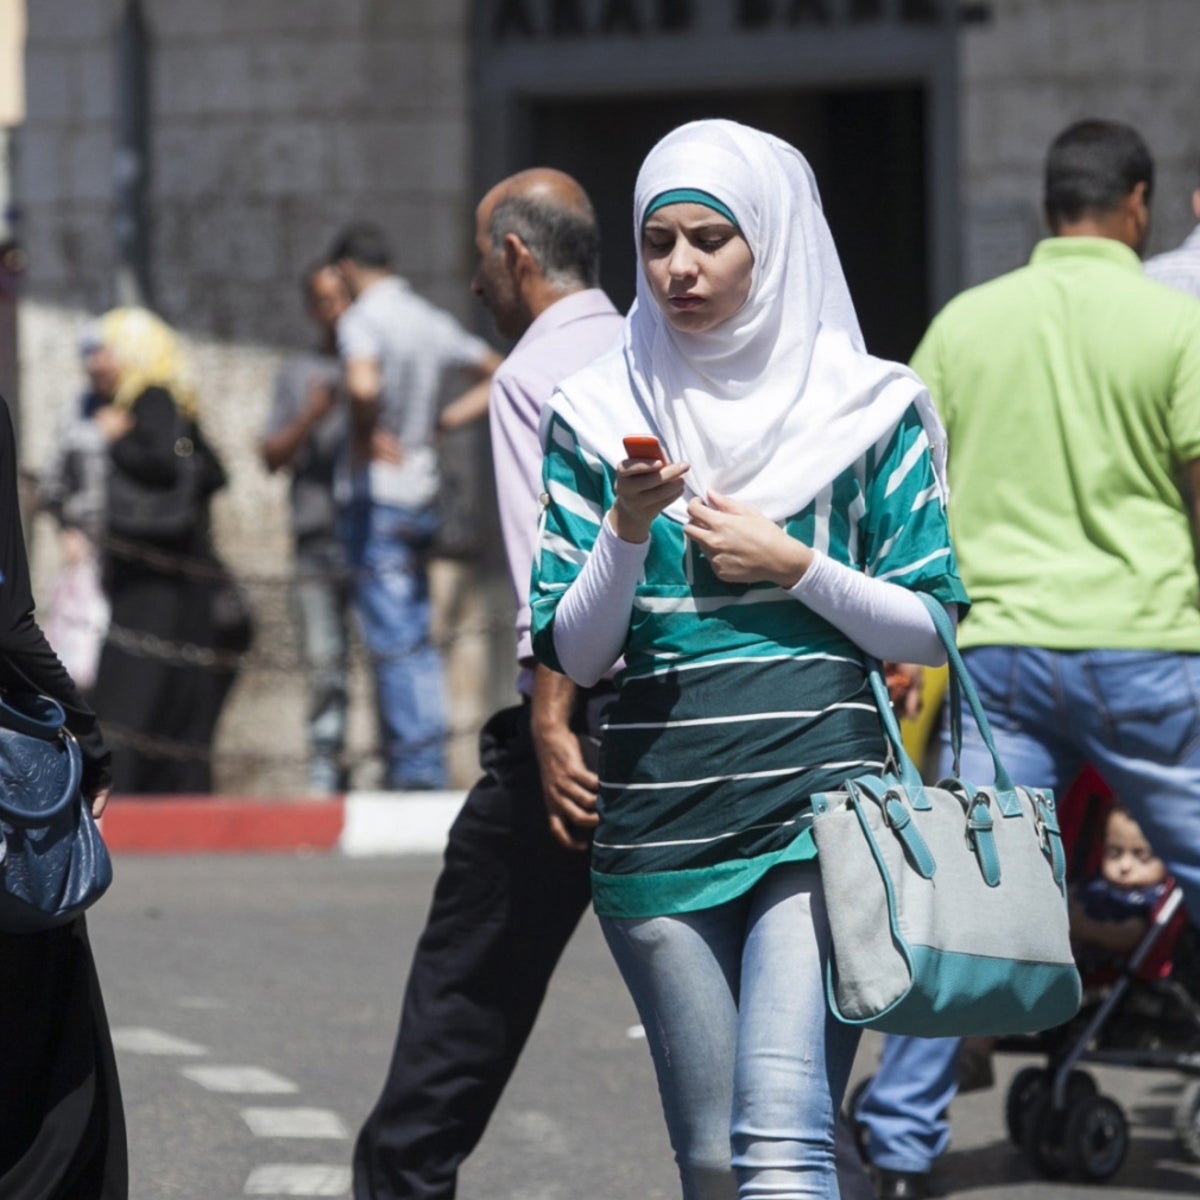 A woman in Ramallah wearing Western-style clothing and a hijab.